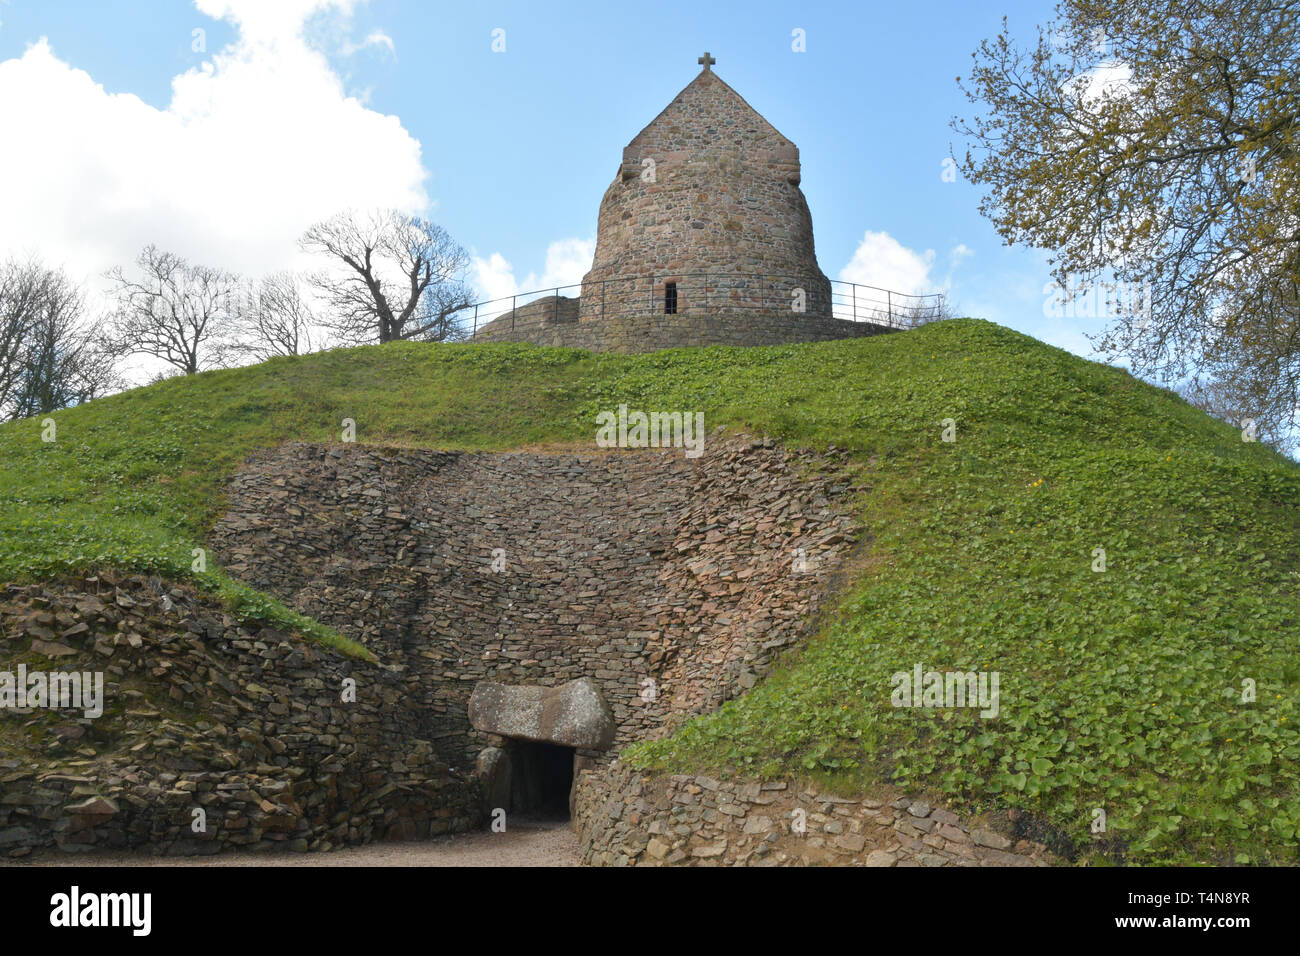 La Hougue Bie  Passage Grave is one of the ten oldest buildings in the world,The 6000 year-old burial site  is one of the best preserved remnants of t Stock Photo